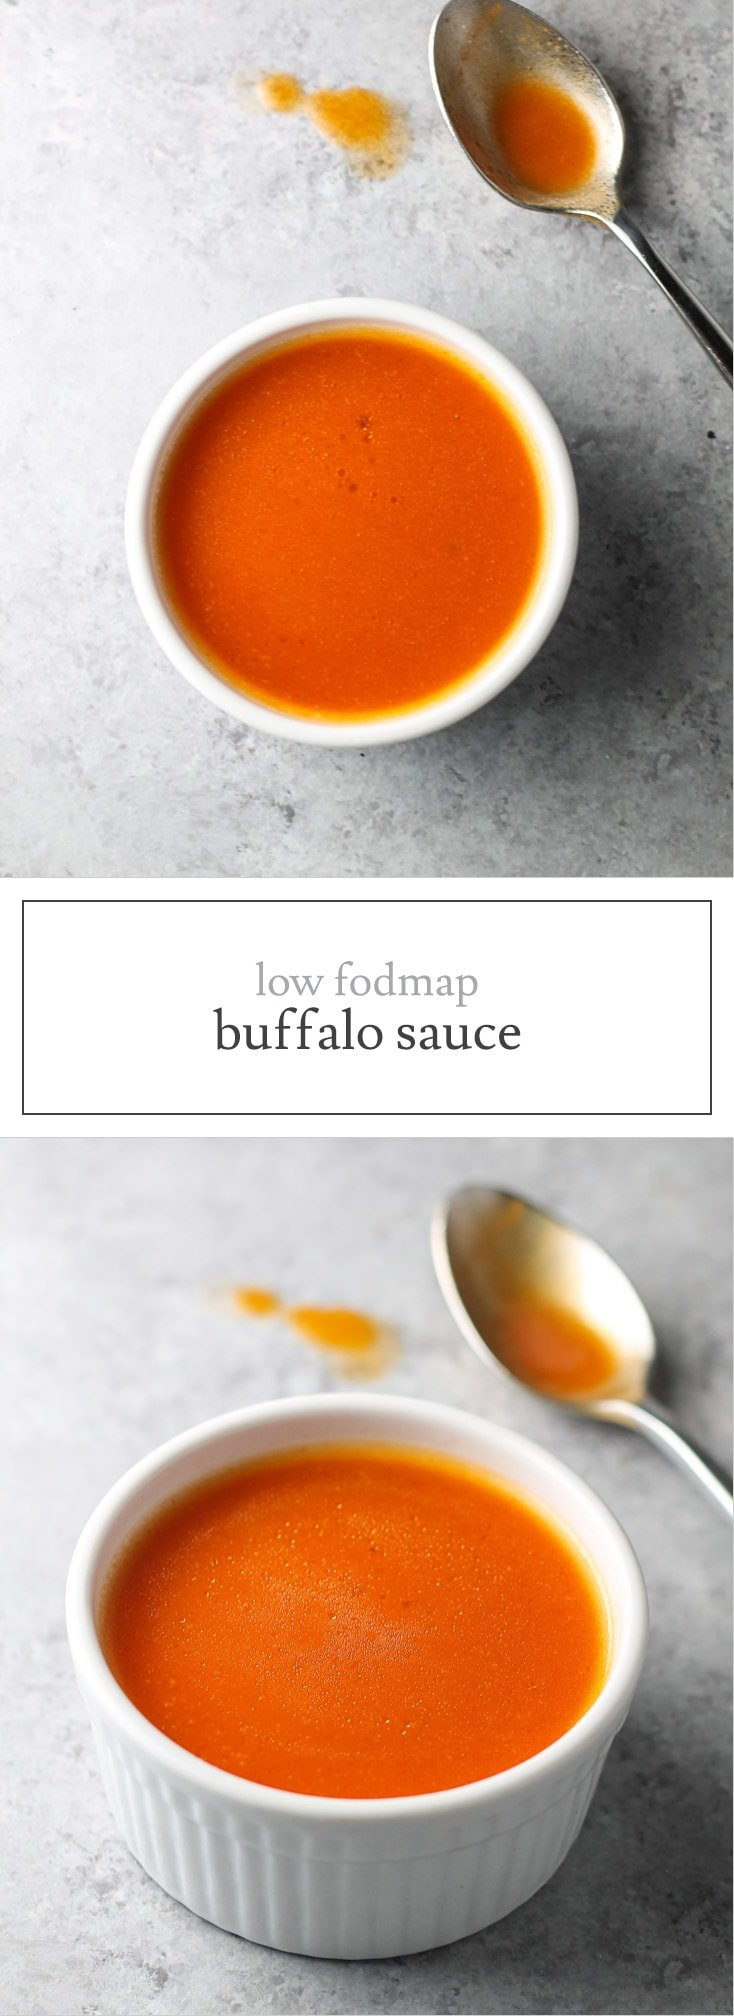 With just three simple ingredients, this Low FODMAP Buffalo Sauce recipe is easy, easy, easy! A great way to add gluten-free flavor to salads, wraps and more!